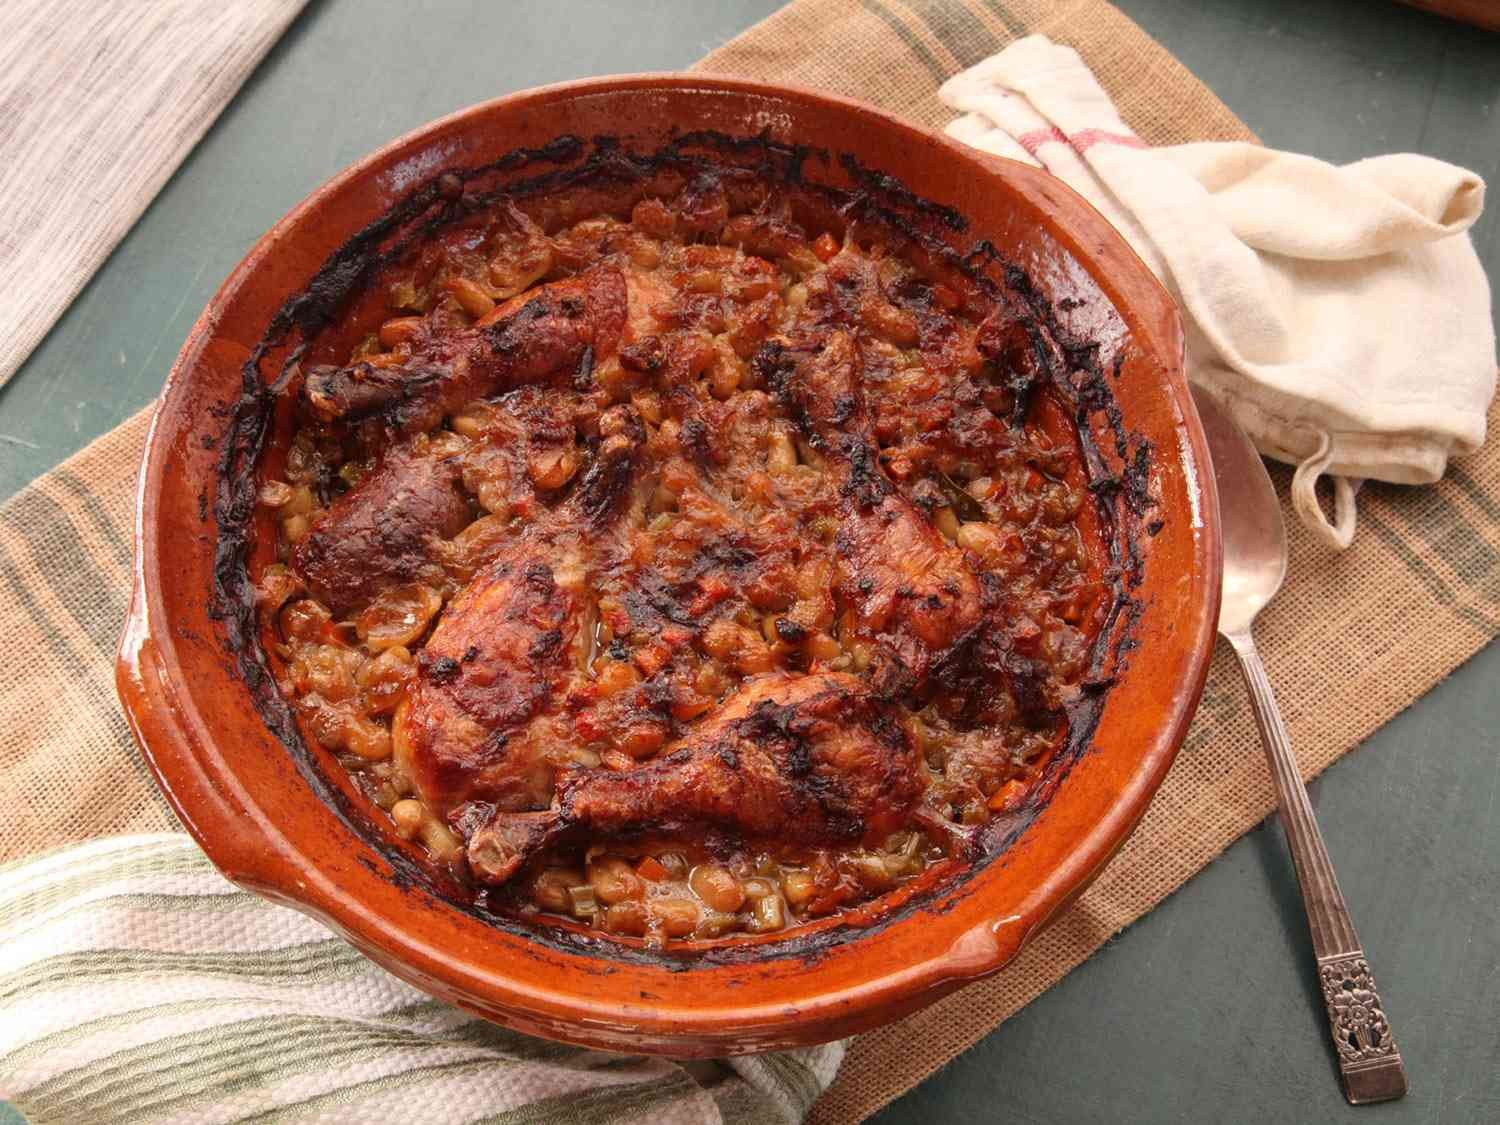 Baked cassoulet in an earthenware pot with a crispy, browned top.